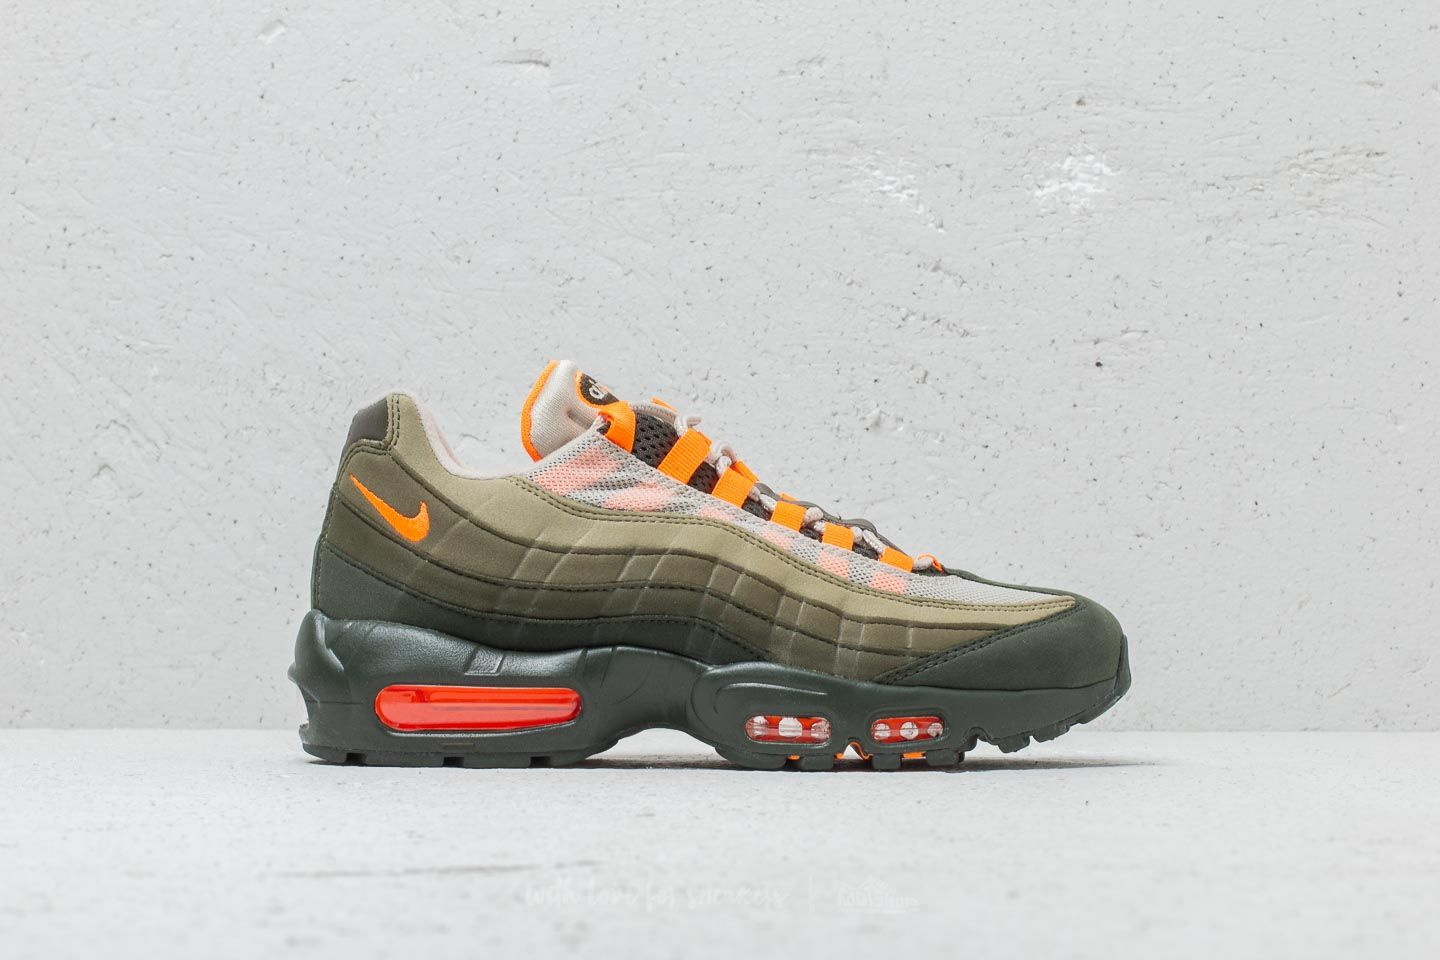 super popular bee2b 0fe43 Nike Air Max 95 OG String Total Orange at a great price 191 € buy